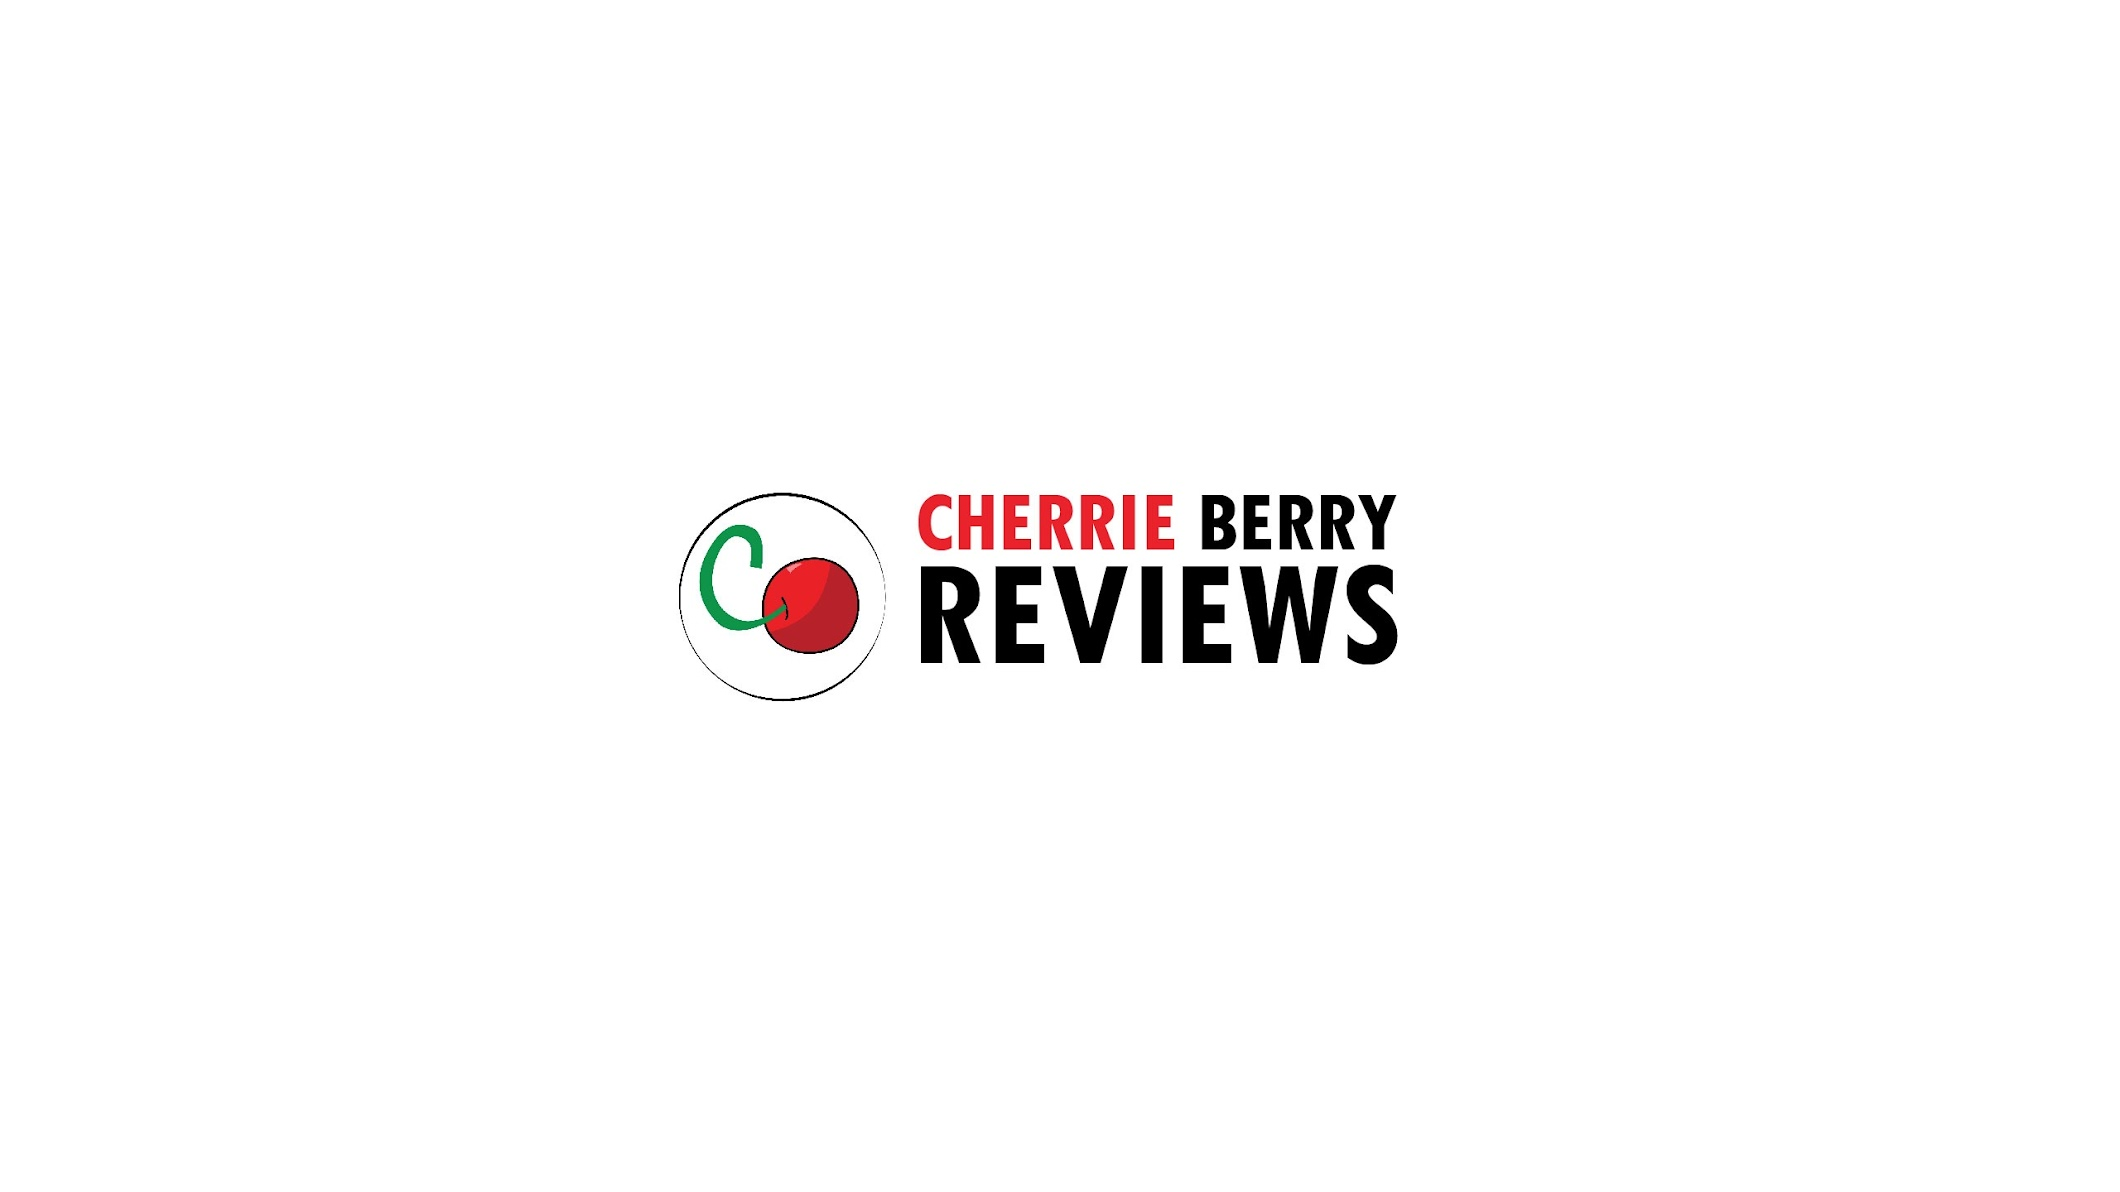 Cherrie Berry Productions